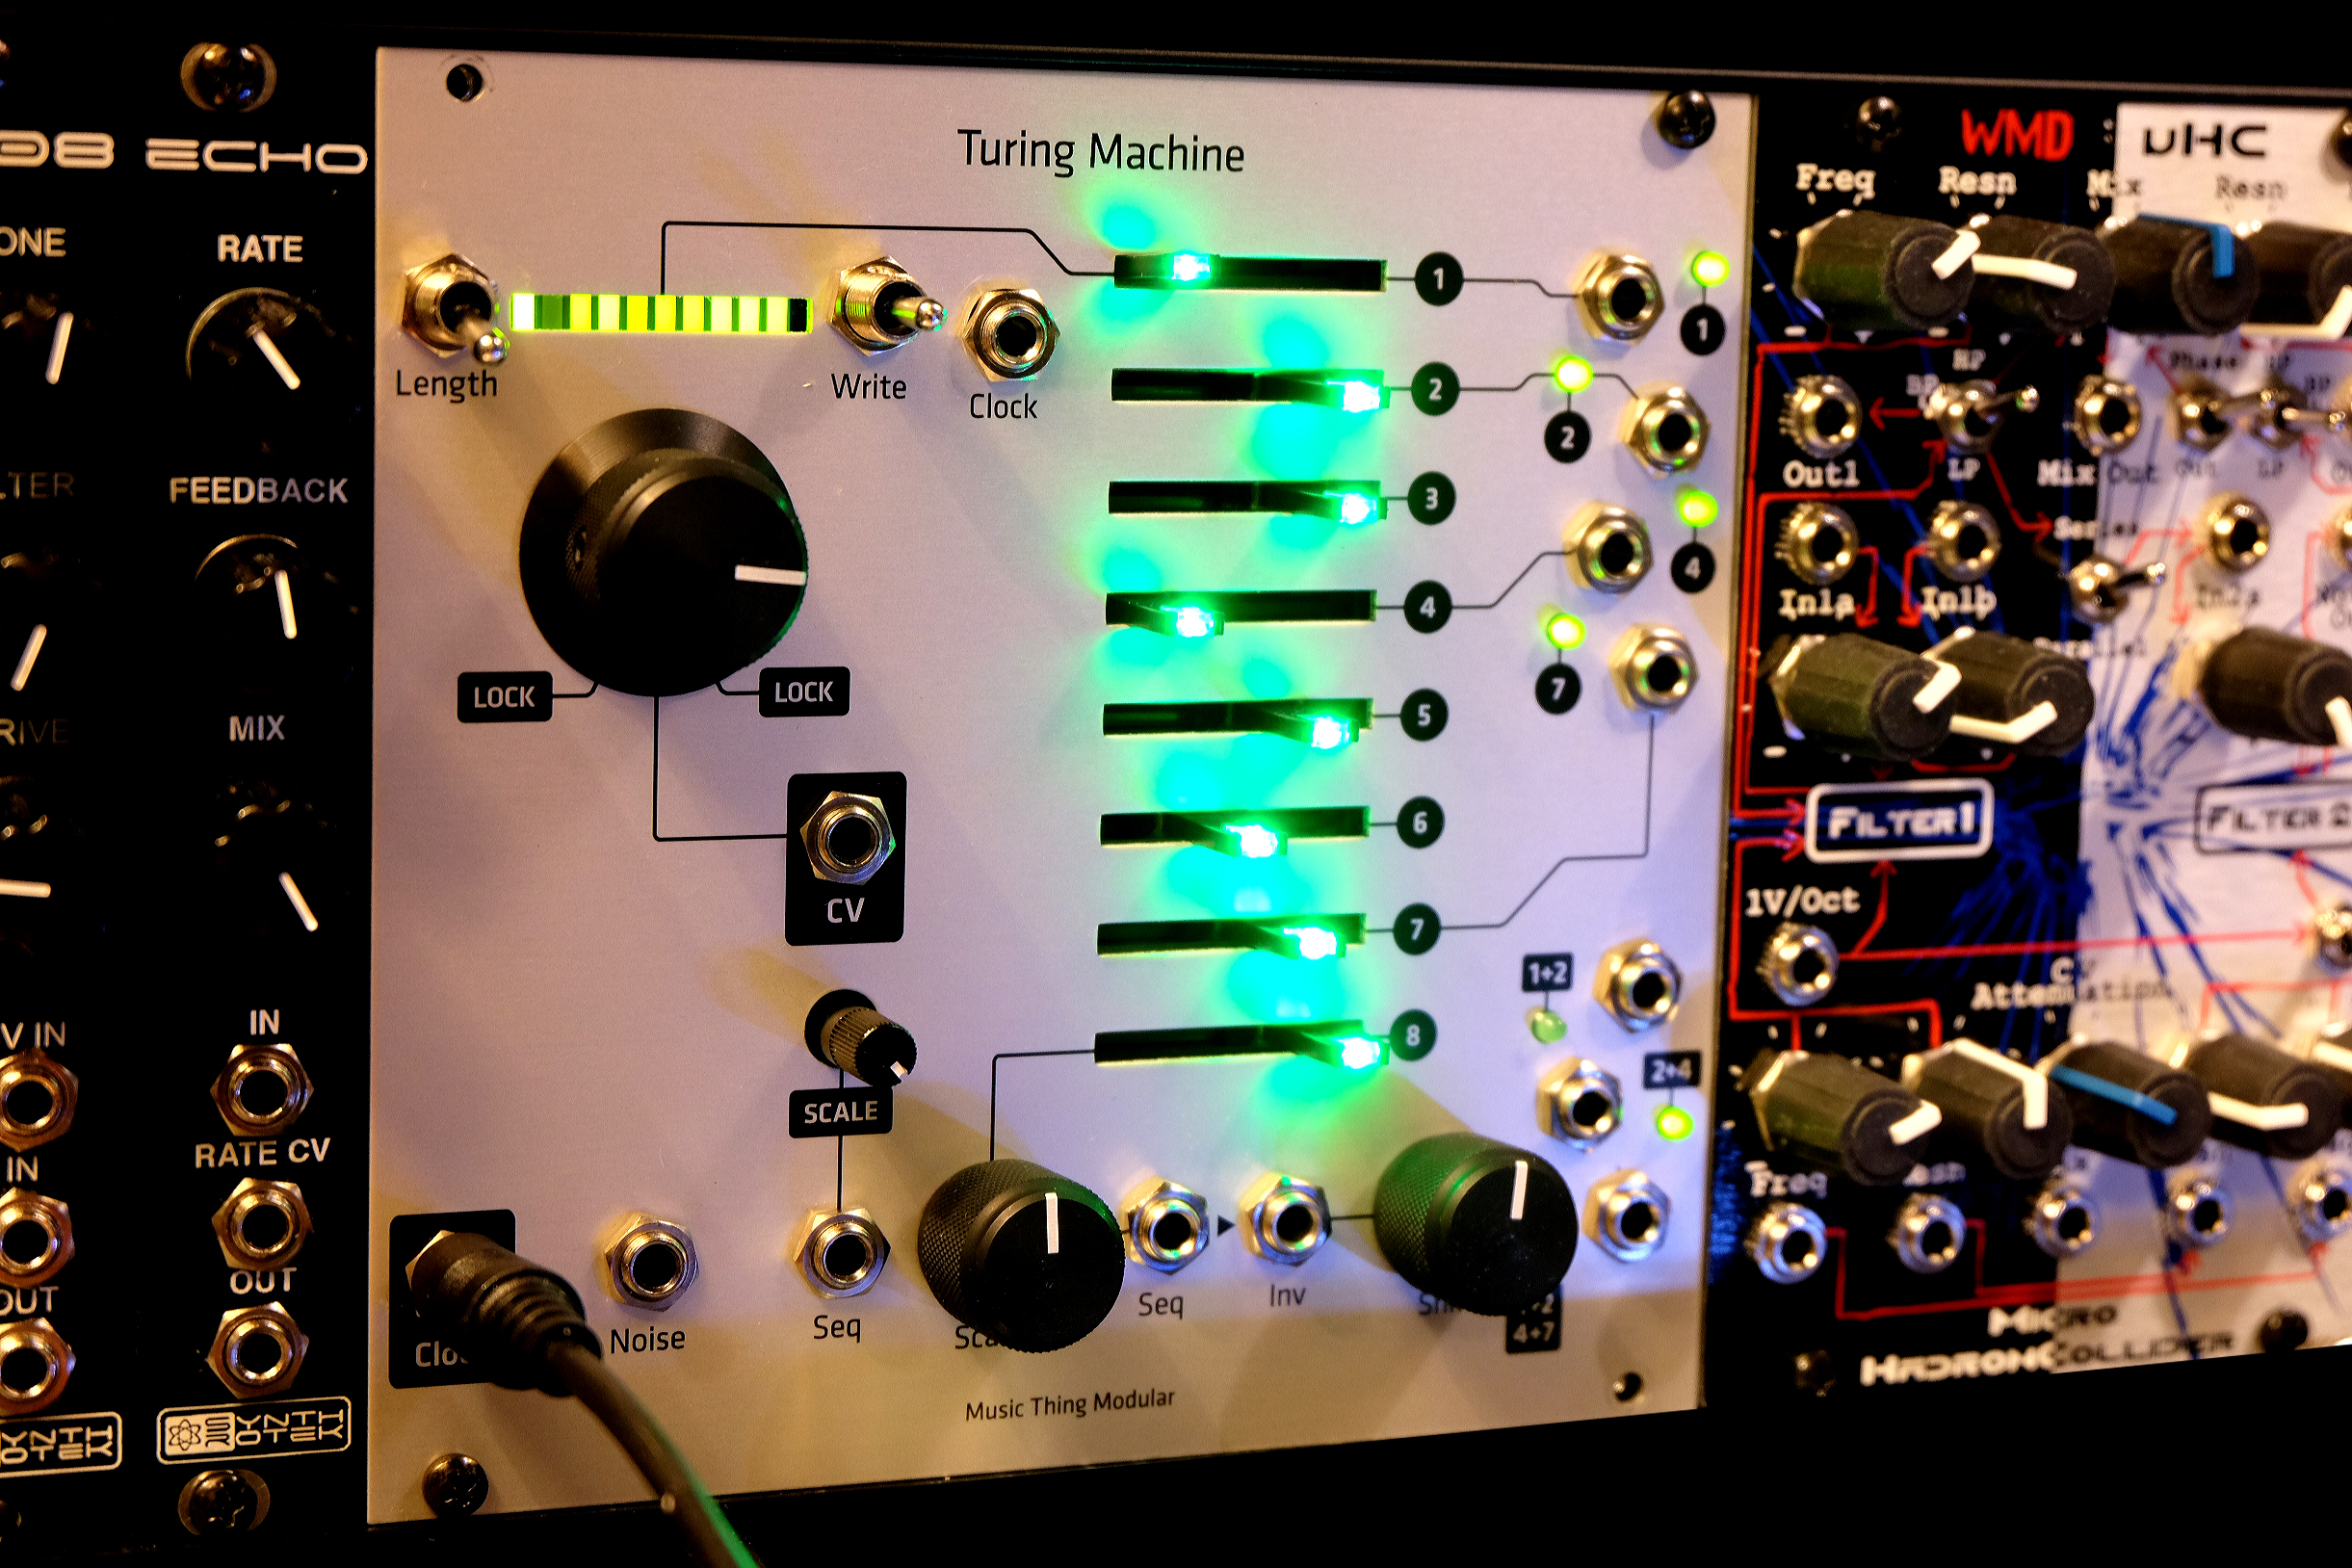 Turing-machine-green-leds